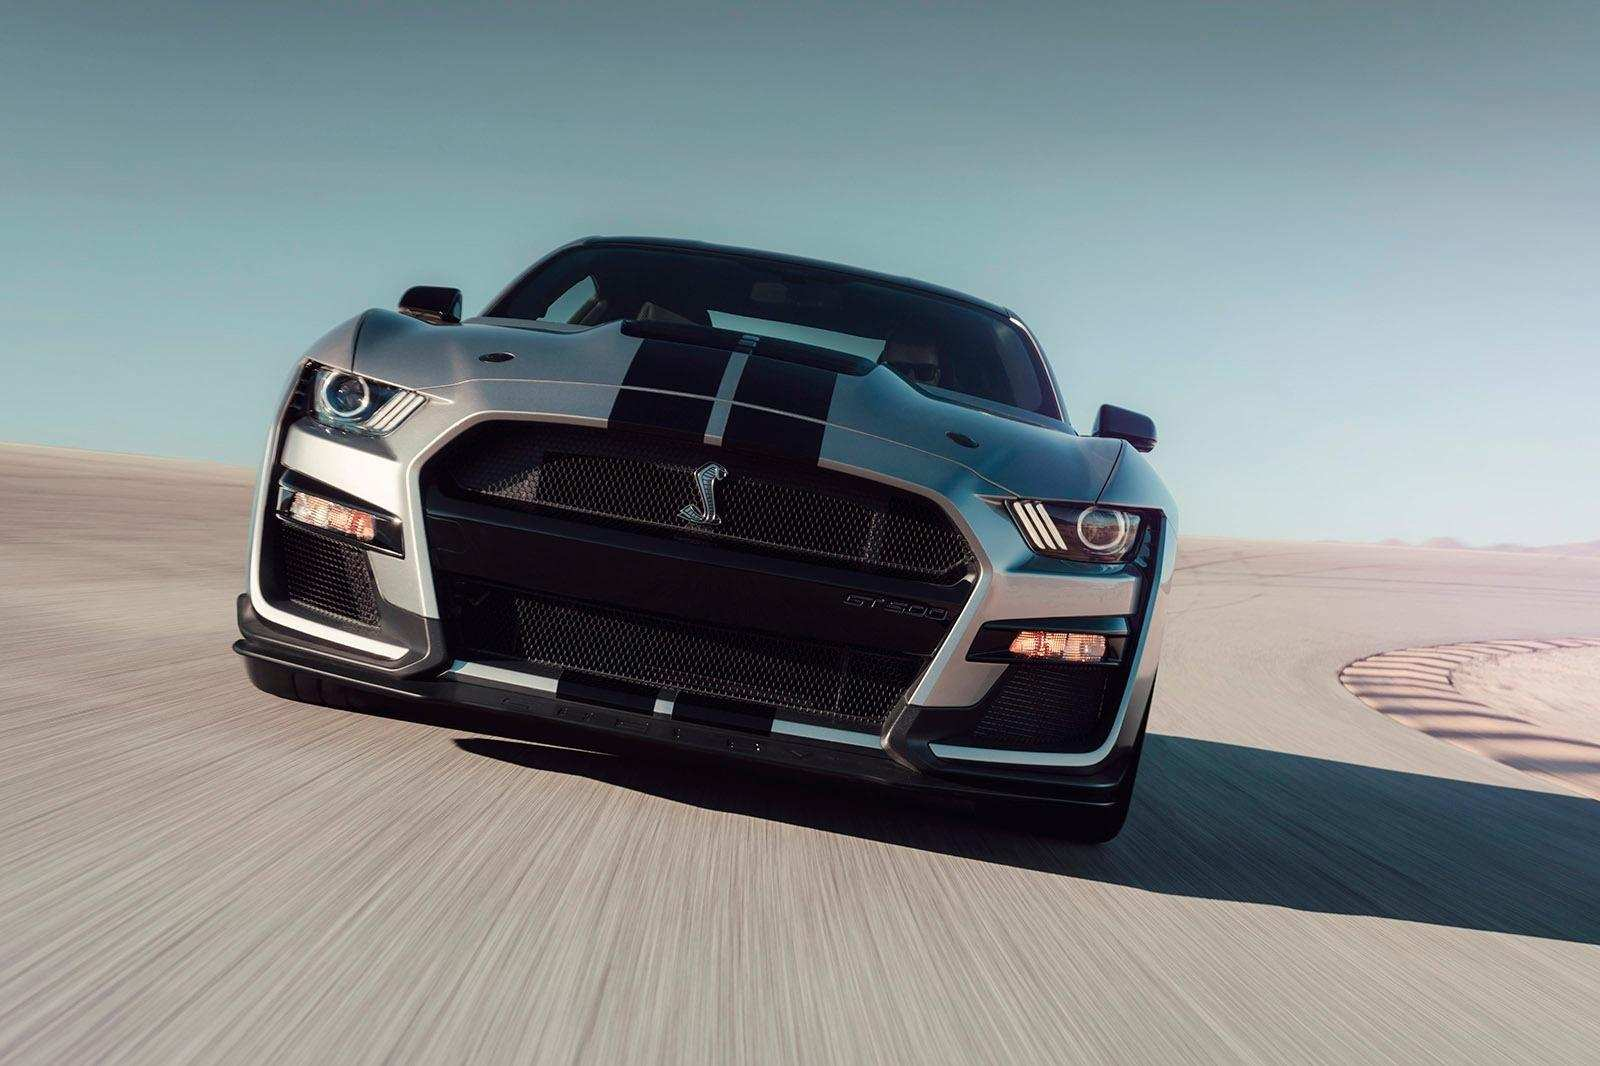 83 A Price Of 2020 Ford Mustang Gt500 Wallpaper